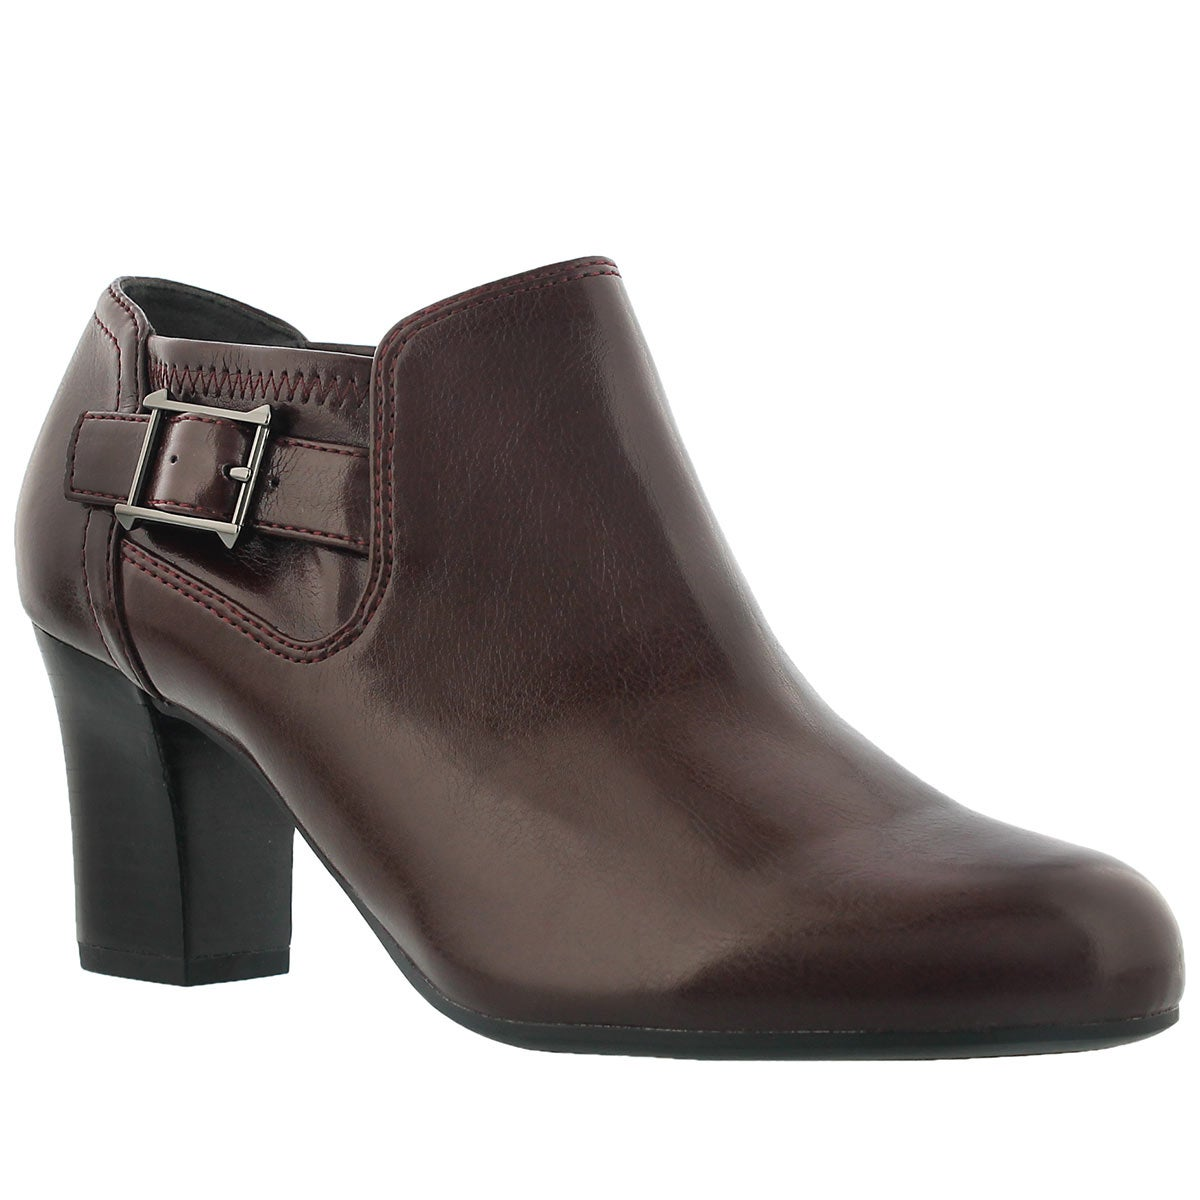 Lds Rapport burgundy buckle dress heel